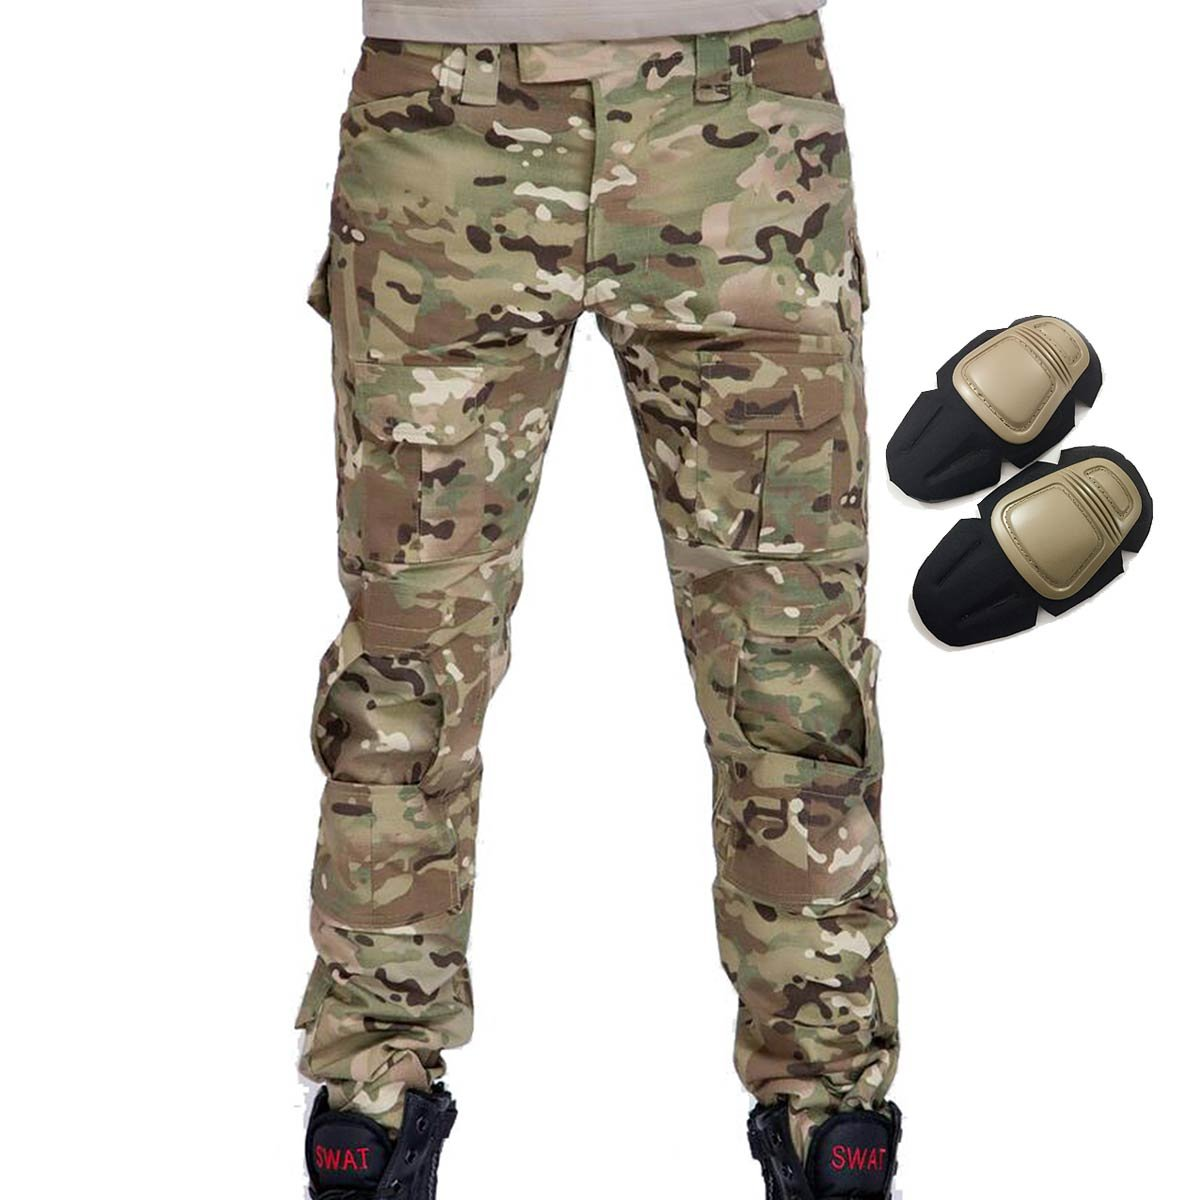 Military Army Tactical Airsoft Paintball Shooting Pants Combat Men Pants with Knee Pads Multicam MC (M) by H World Shopping